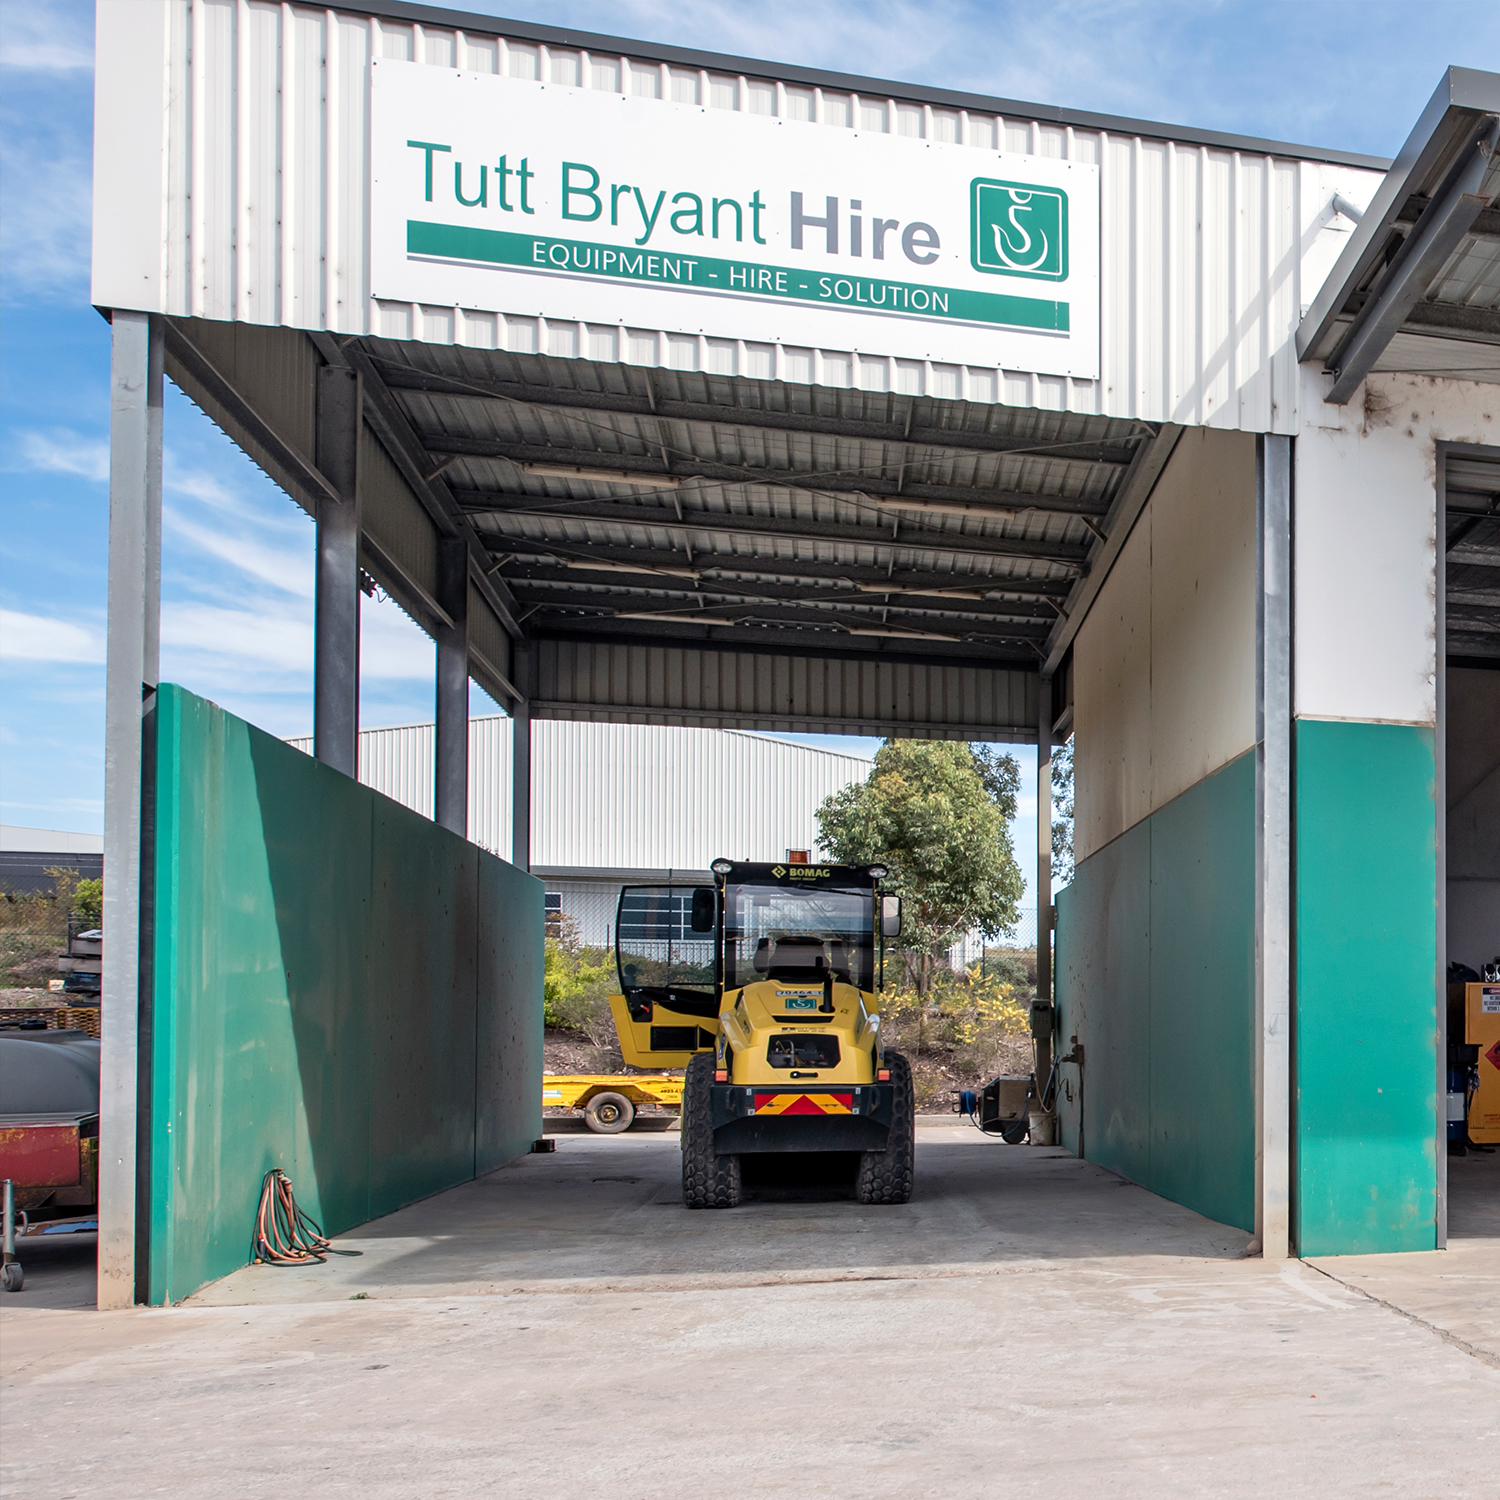 A Tutt Bryant Hire location